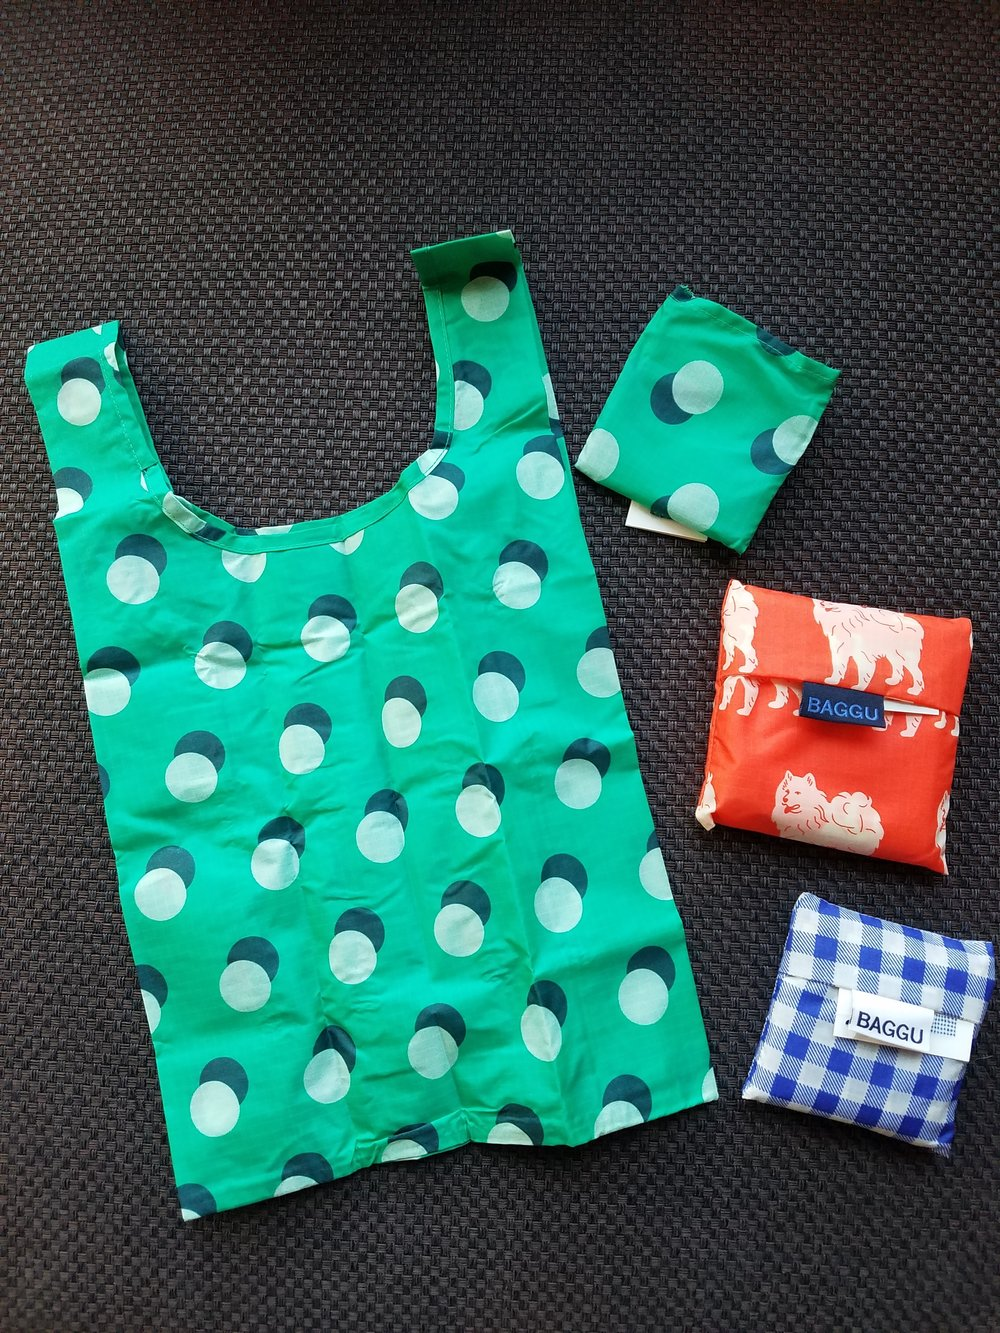 Reusable bags in two different sizes. Machine washable and made of ripstop nylon. Lots of colors and patterns available. Standard Baggu is $10 and the Baby Baggu is $8. *Open bag in picture is the Baby Baggu